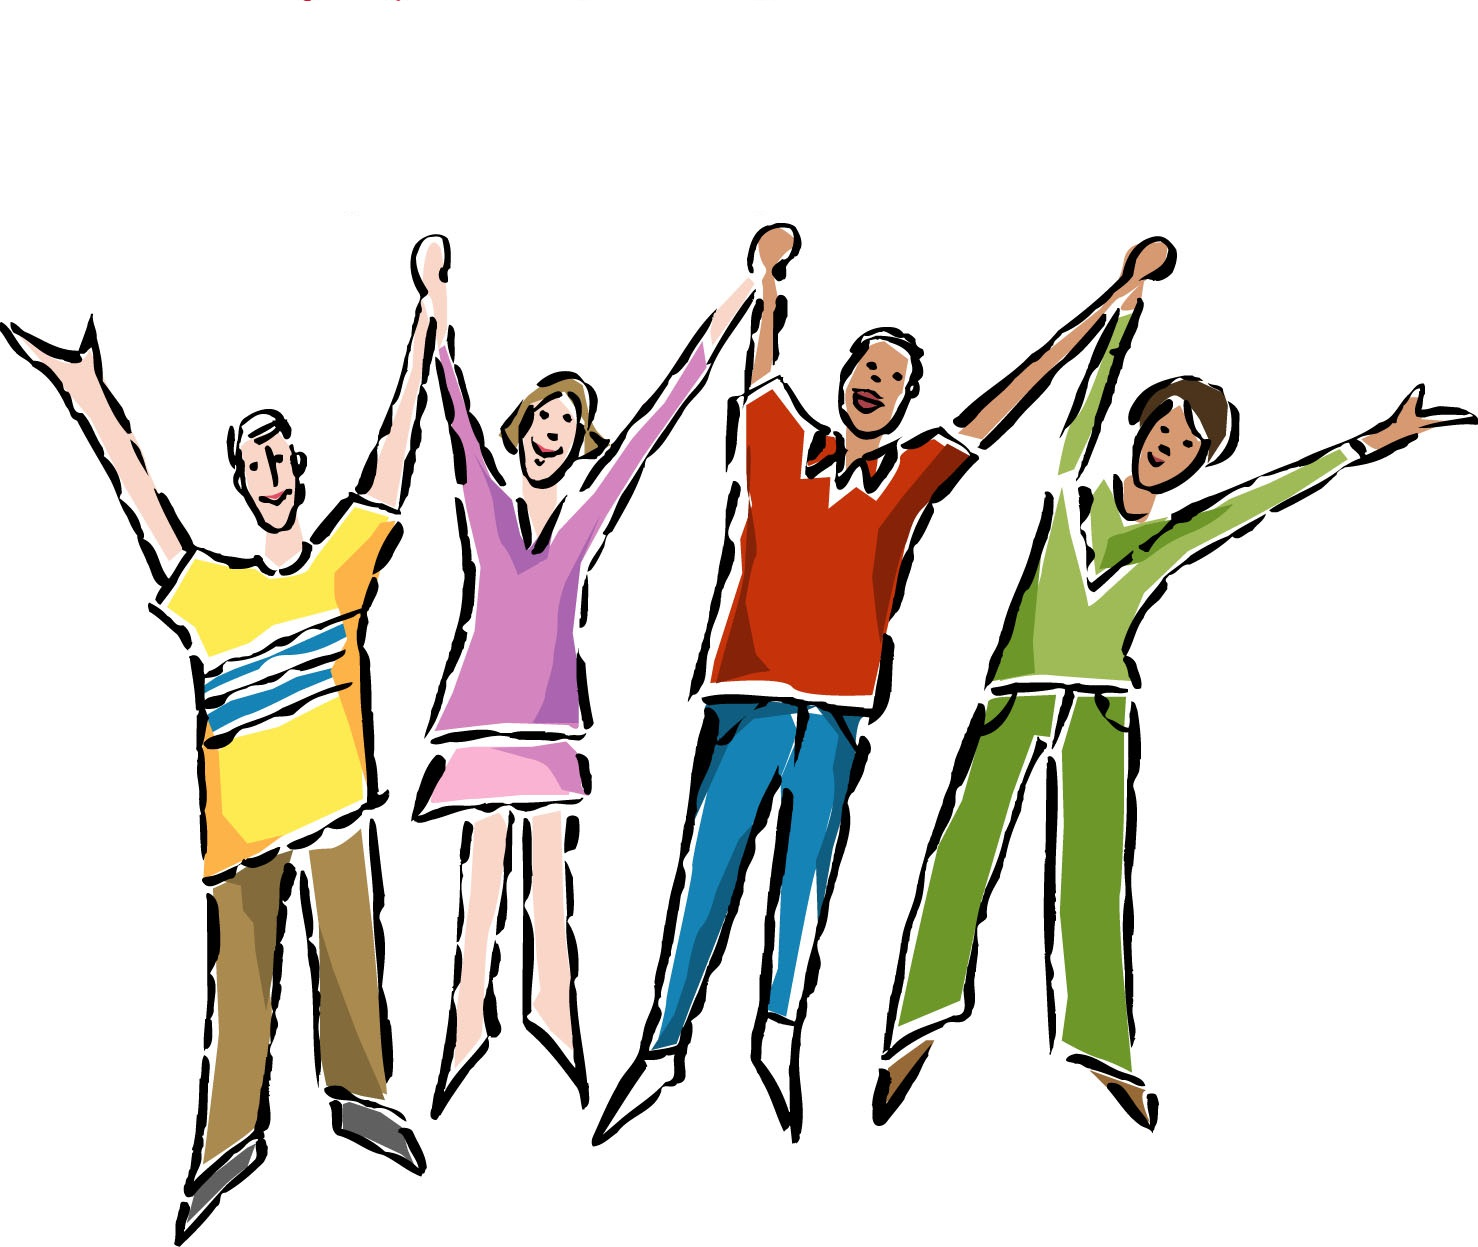 youth-group-clip-art-356659